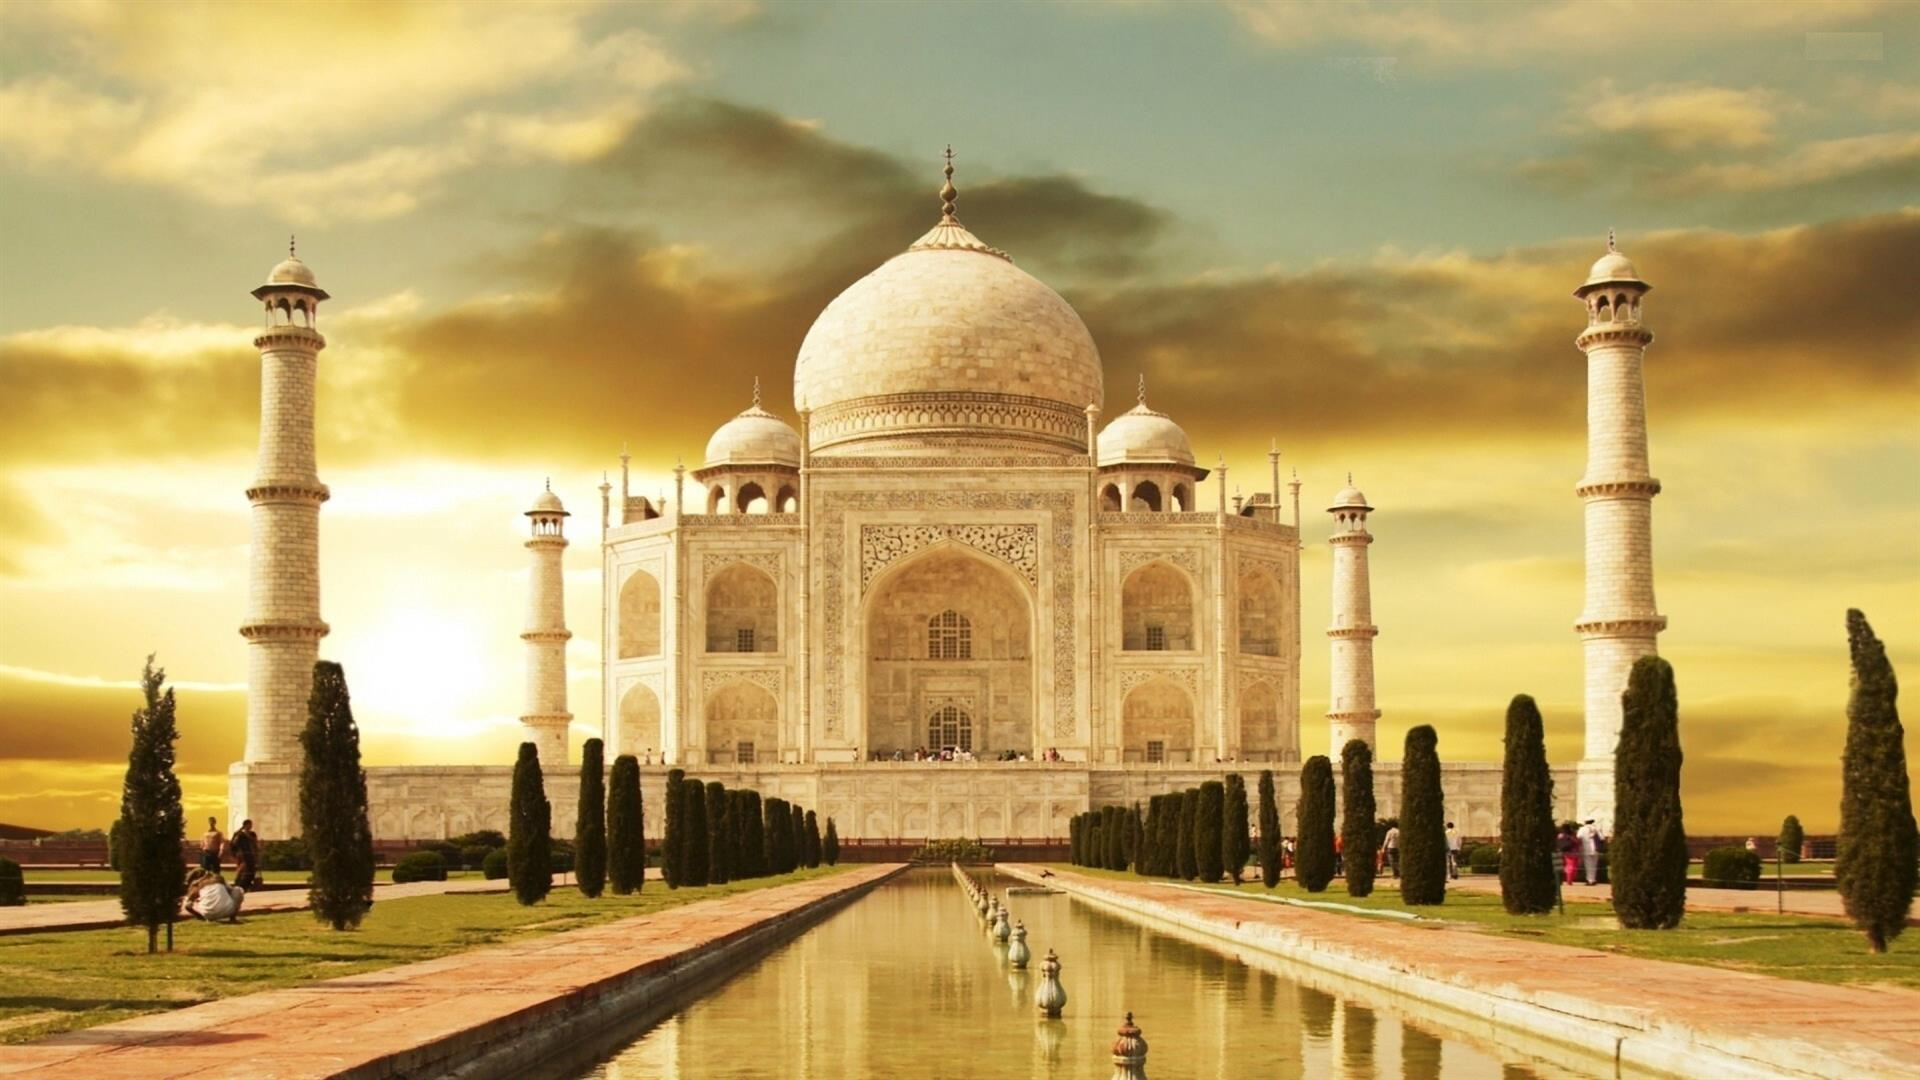 1920x1080 Taj Mahal Wonders of the World in Agra India HD Wallpapers